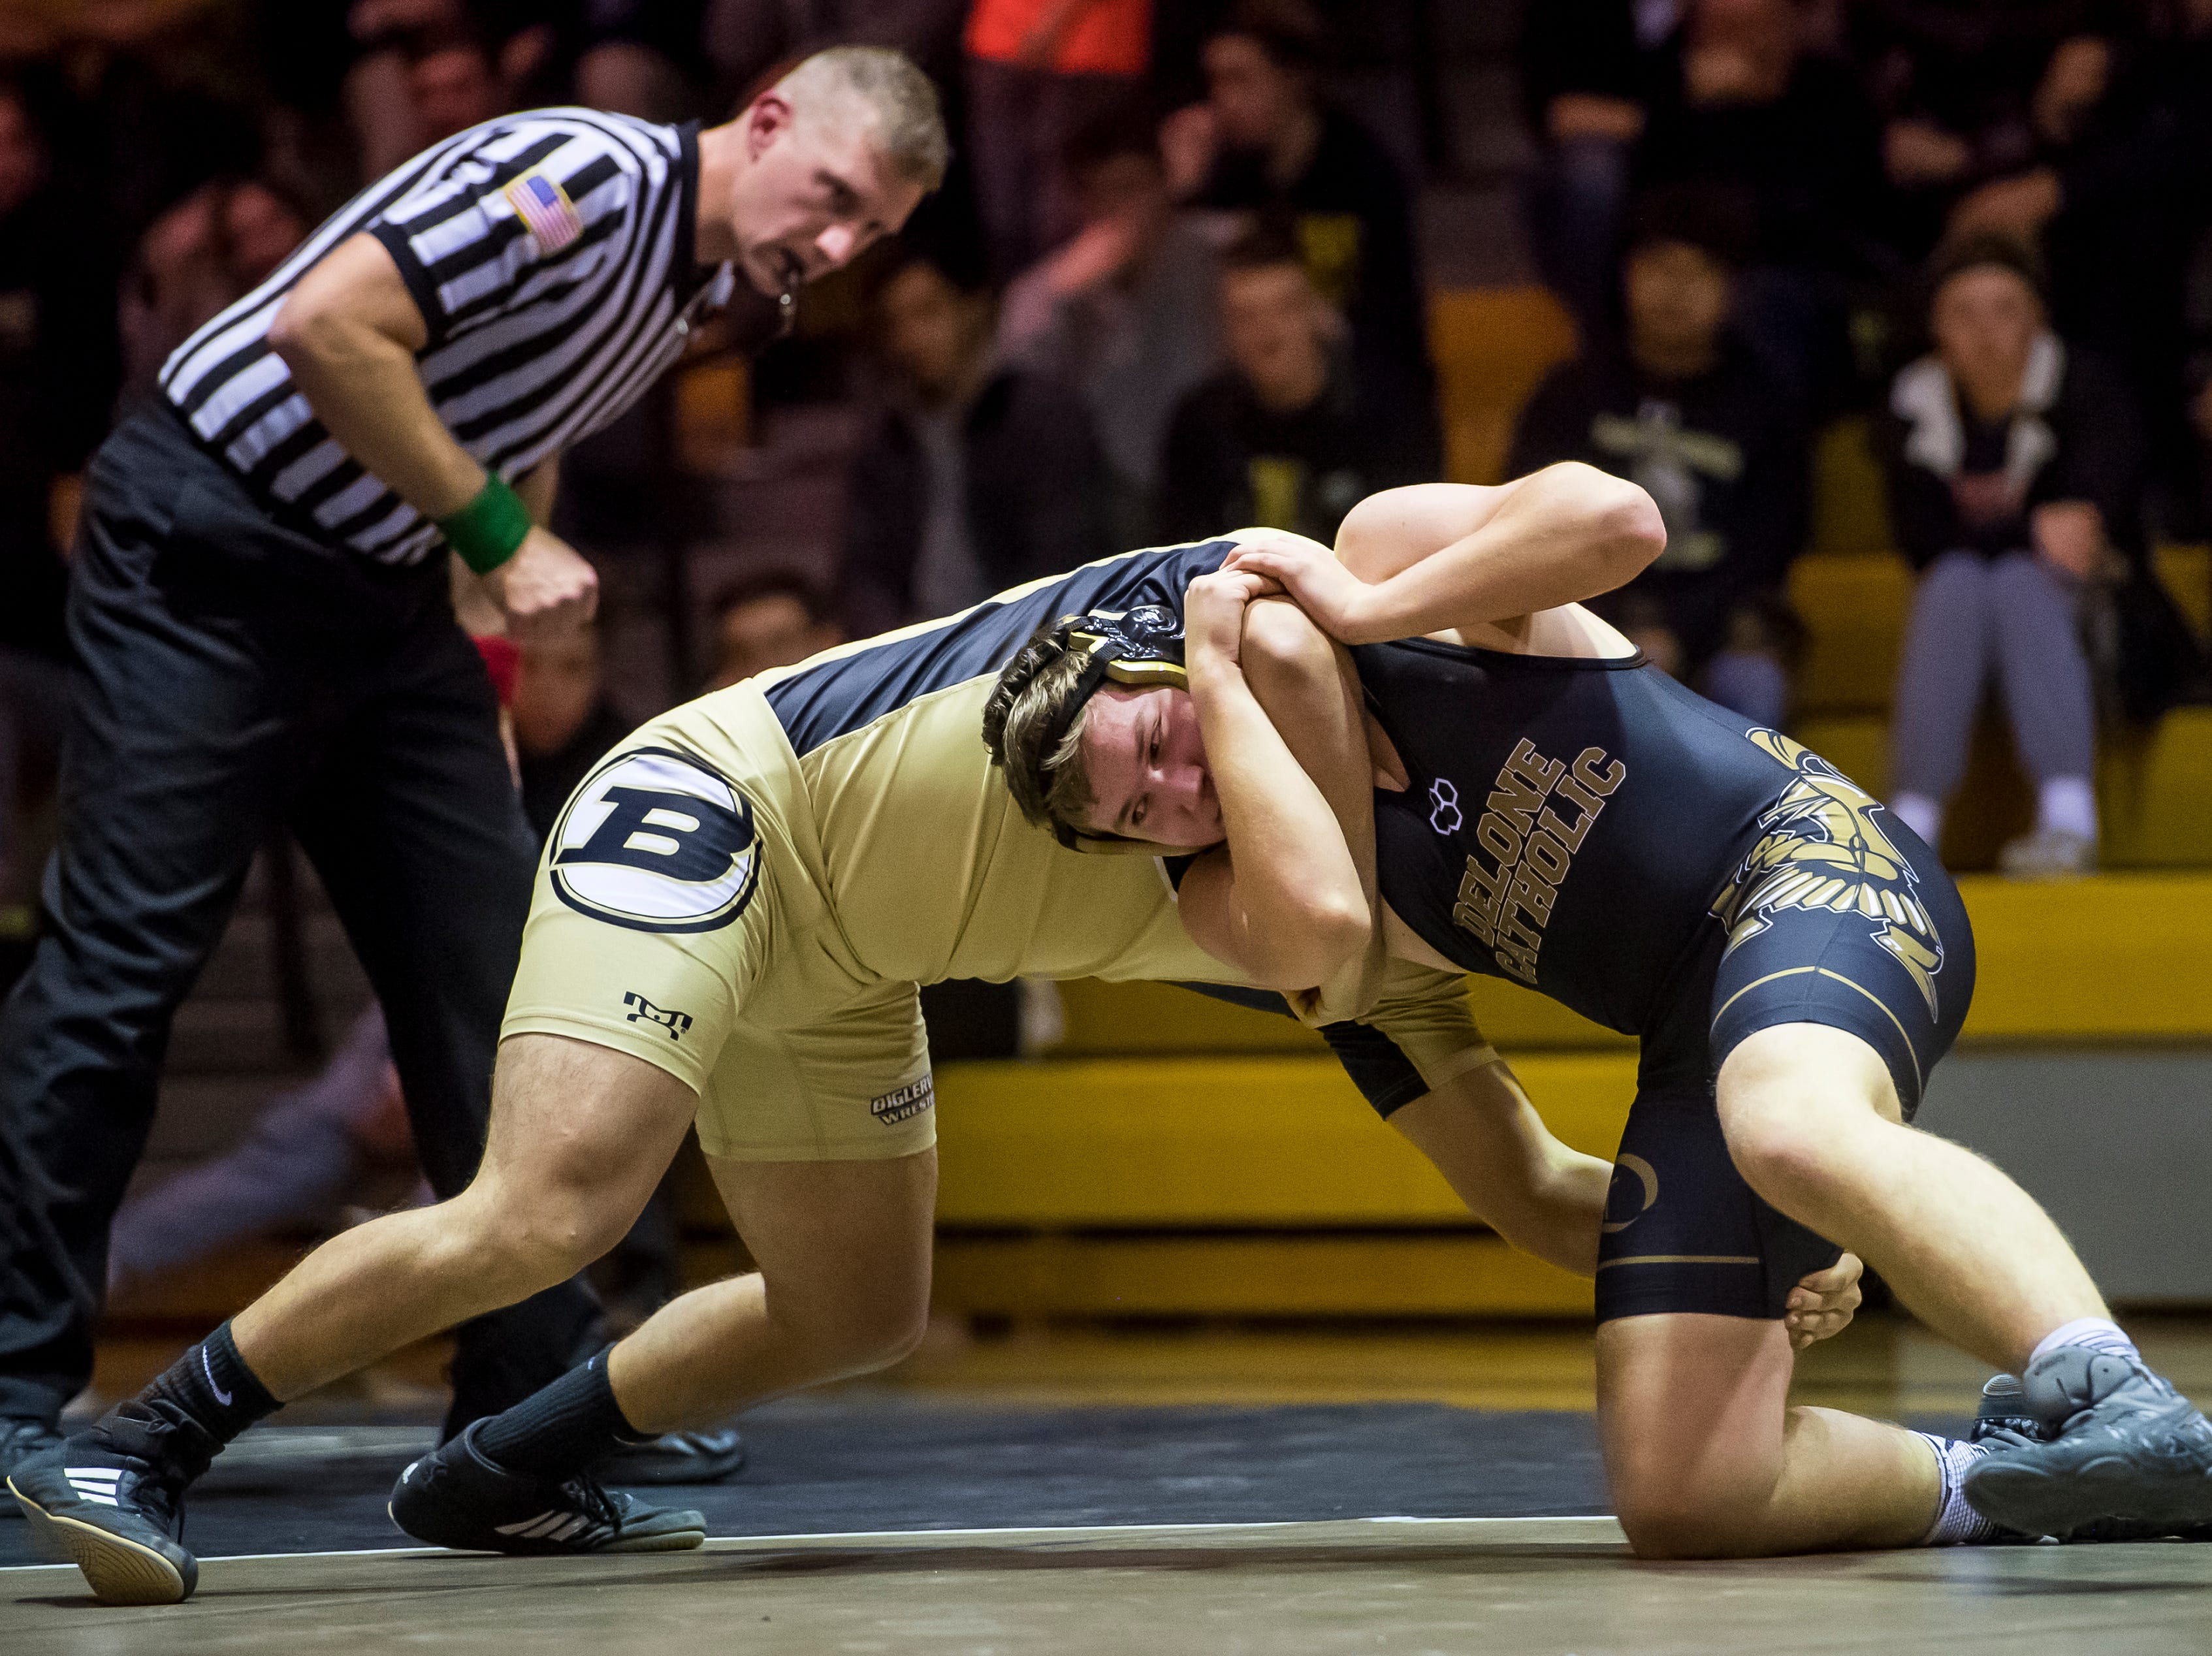 Delone Catholic's Michael Deporter, right, wrestles Biglerville's Johnny Sanchez in the 195-pound bout at Delone Catholic High School on December 19, 2018. Sanchez won by fall as the Canners won 51-21.